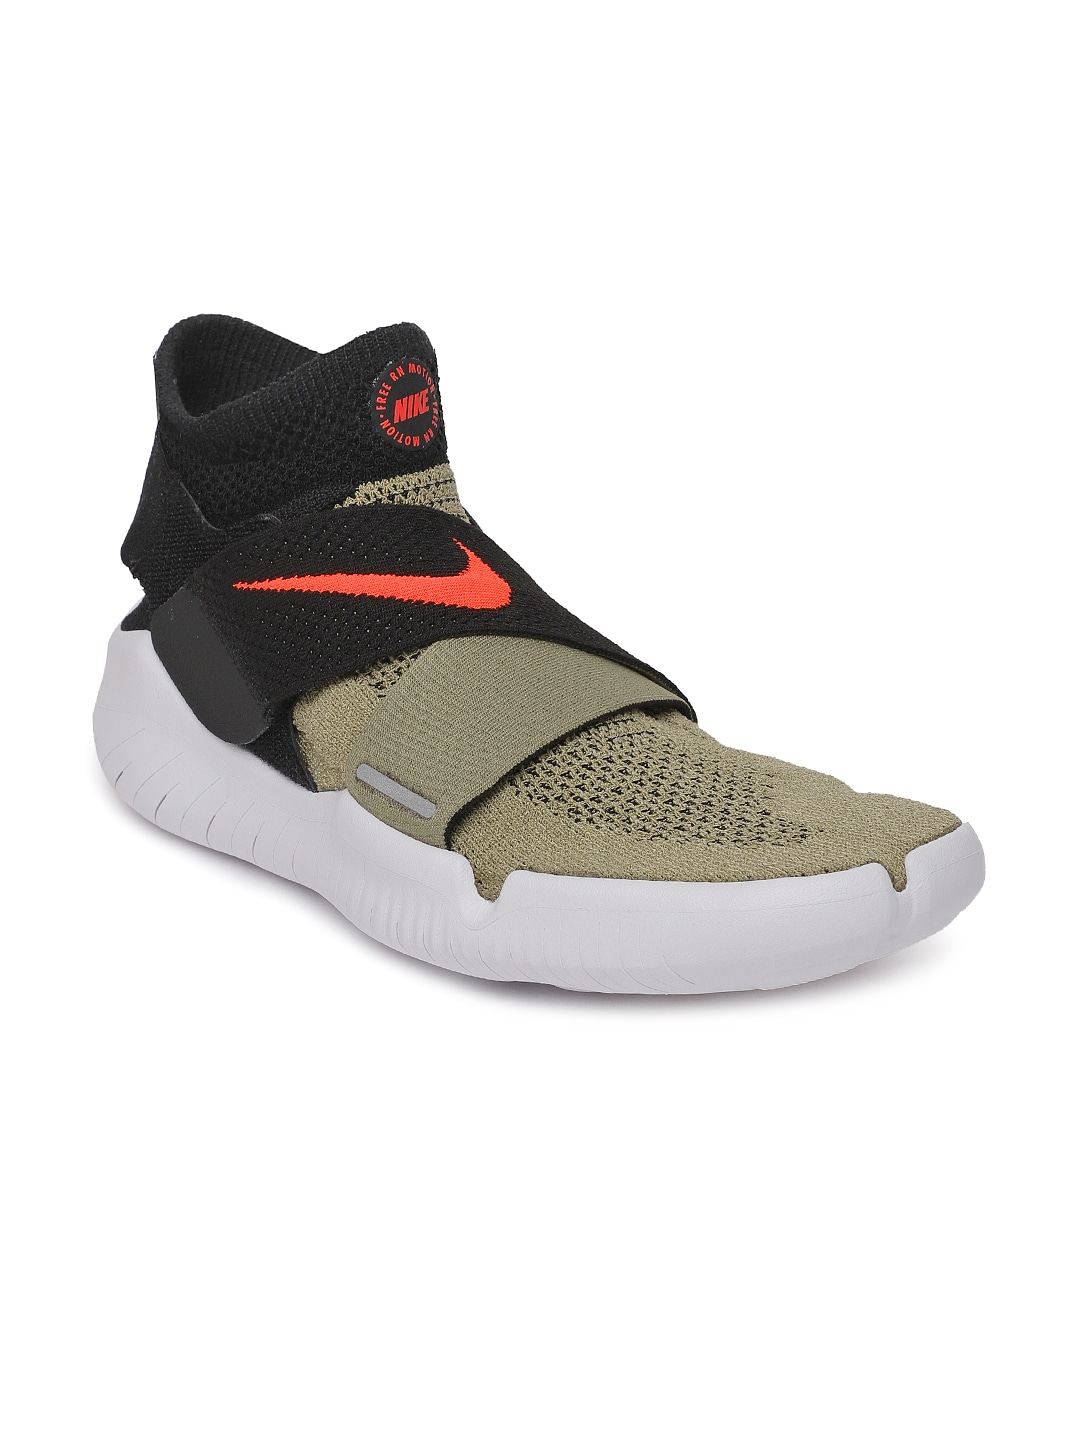 detailed look eaa8c f9c38 Men LEBRON SOLDIER XI Shoes. Nike. Rs. 12995. Men Basketball Shoes. ADIDAS.  Rs. 12999. Men D Rose 7 Low Shoes. Nike